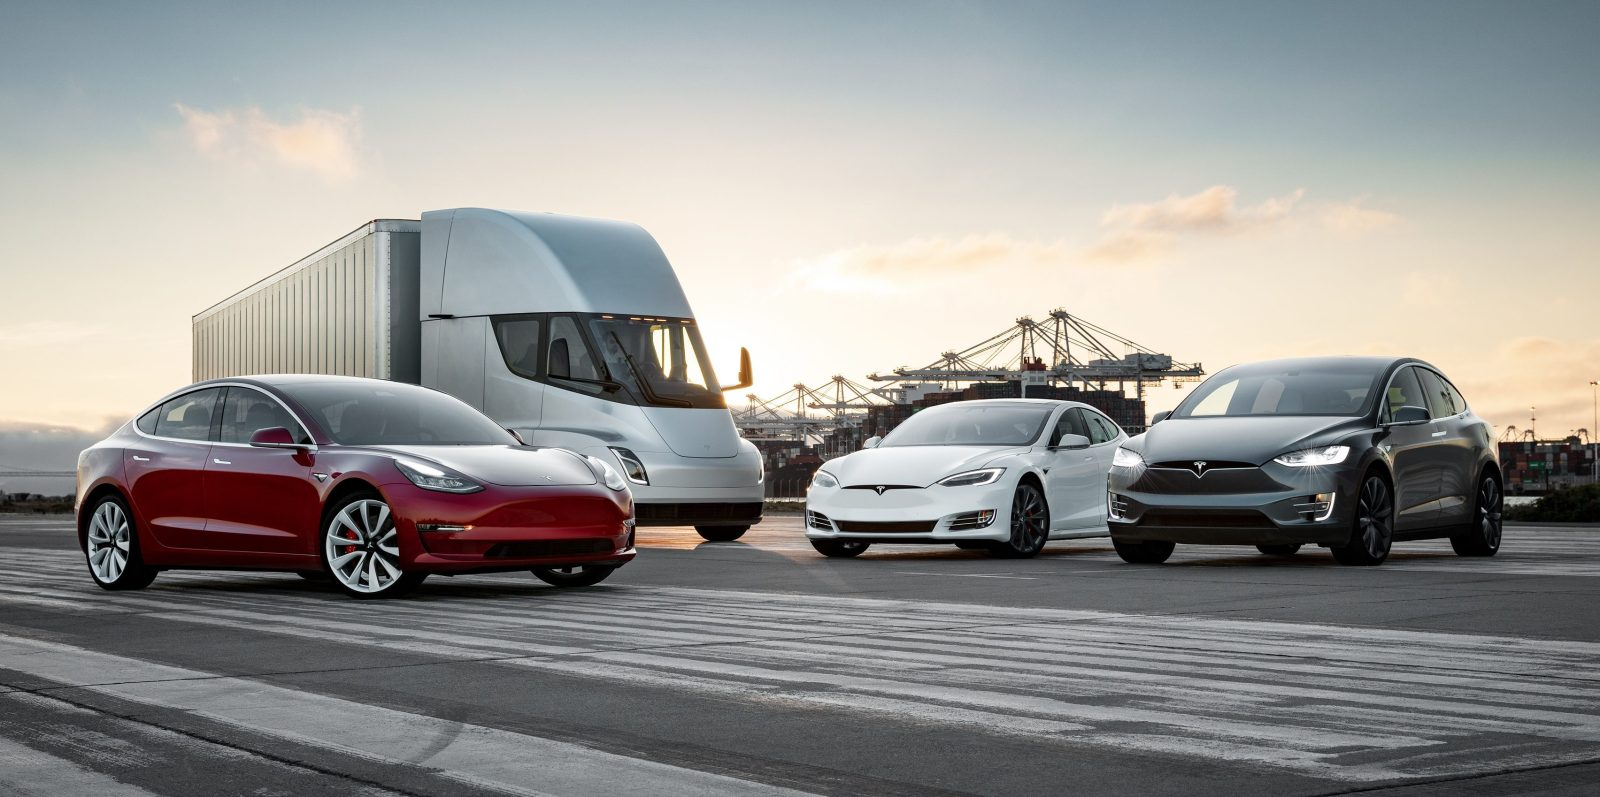 What To Expect From Tesla In 2019 Model Y Model S X